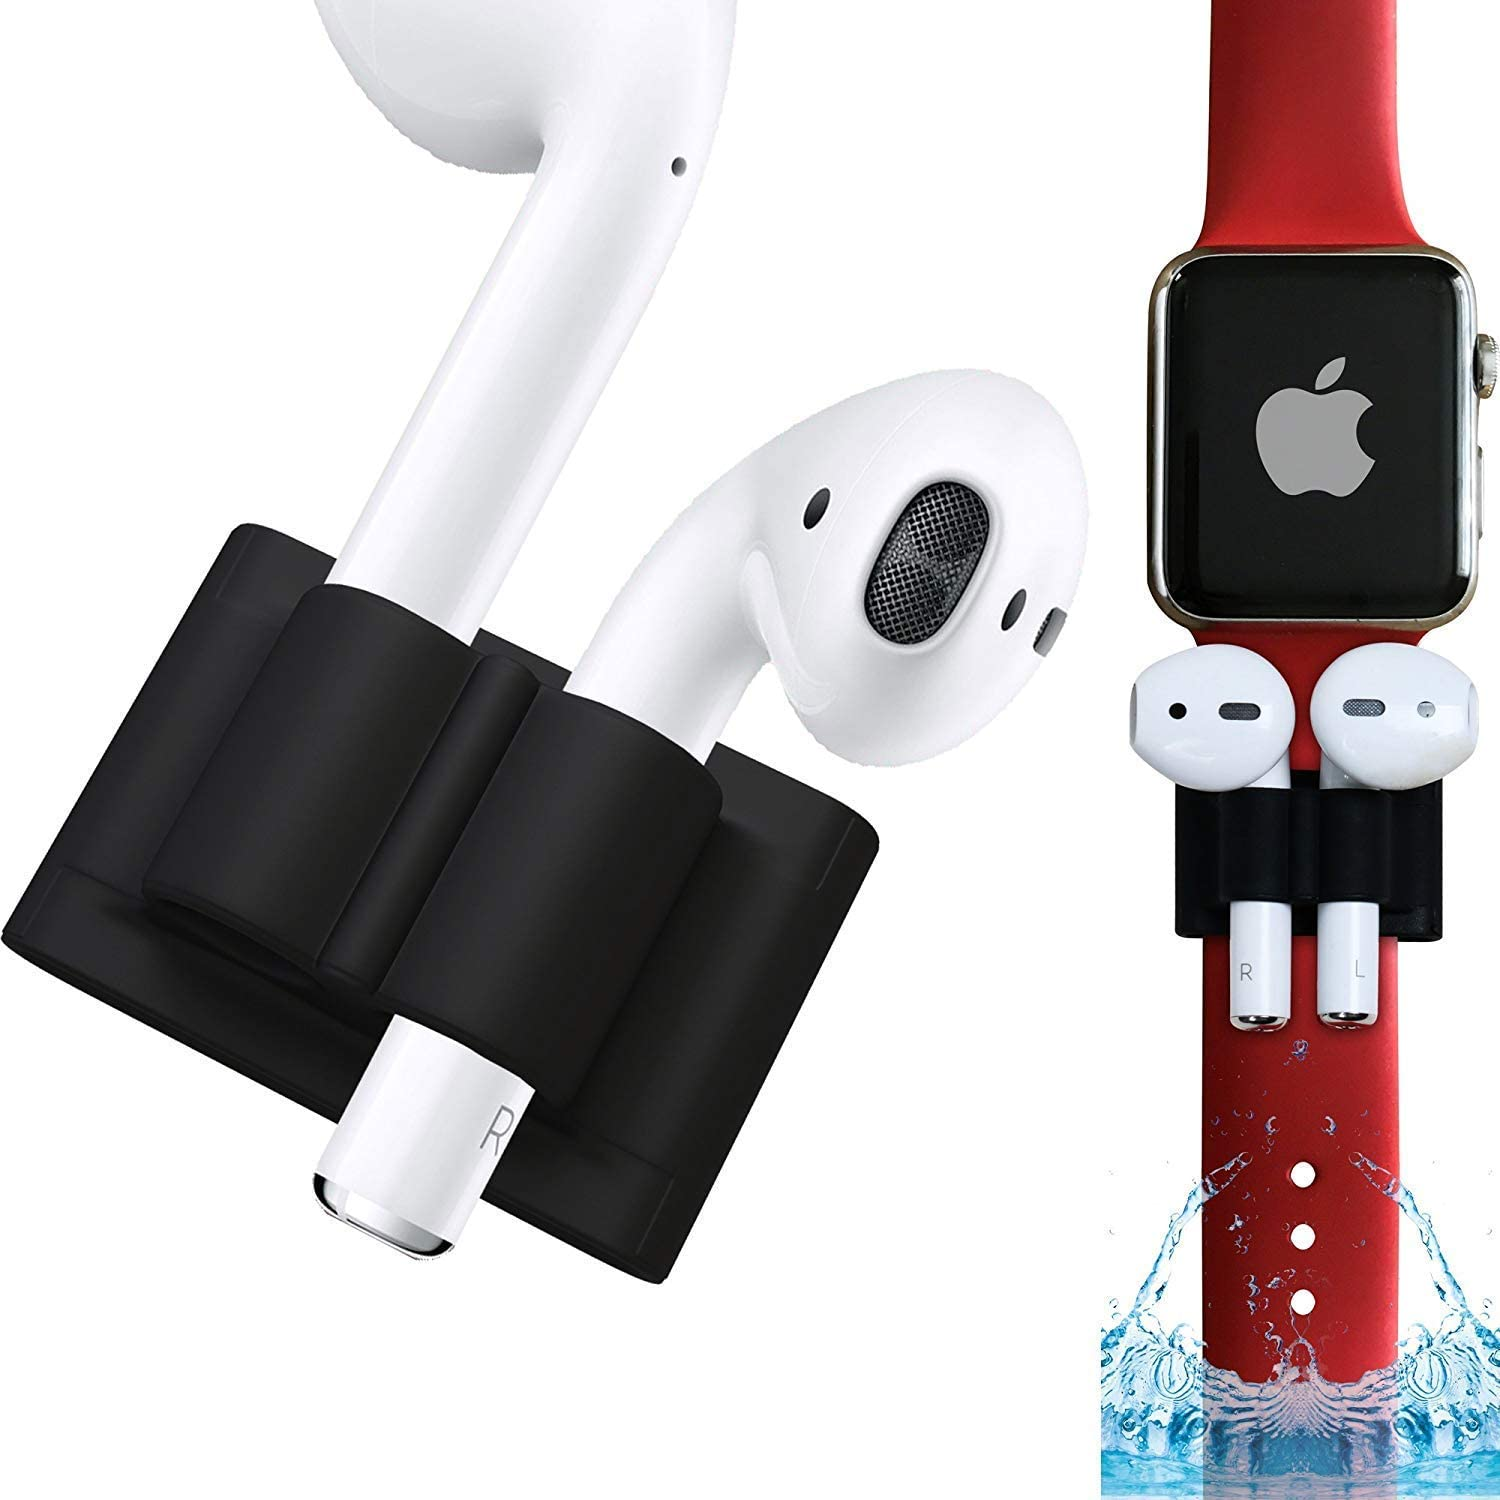 AirPods Watch Band Holder | Apple Airpod Accessories Holder for Exercise | Safely Secure Your AirPods On Your Wrist Strap with The Bander While Working Out